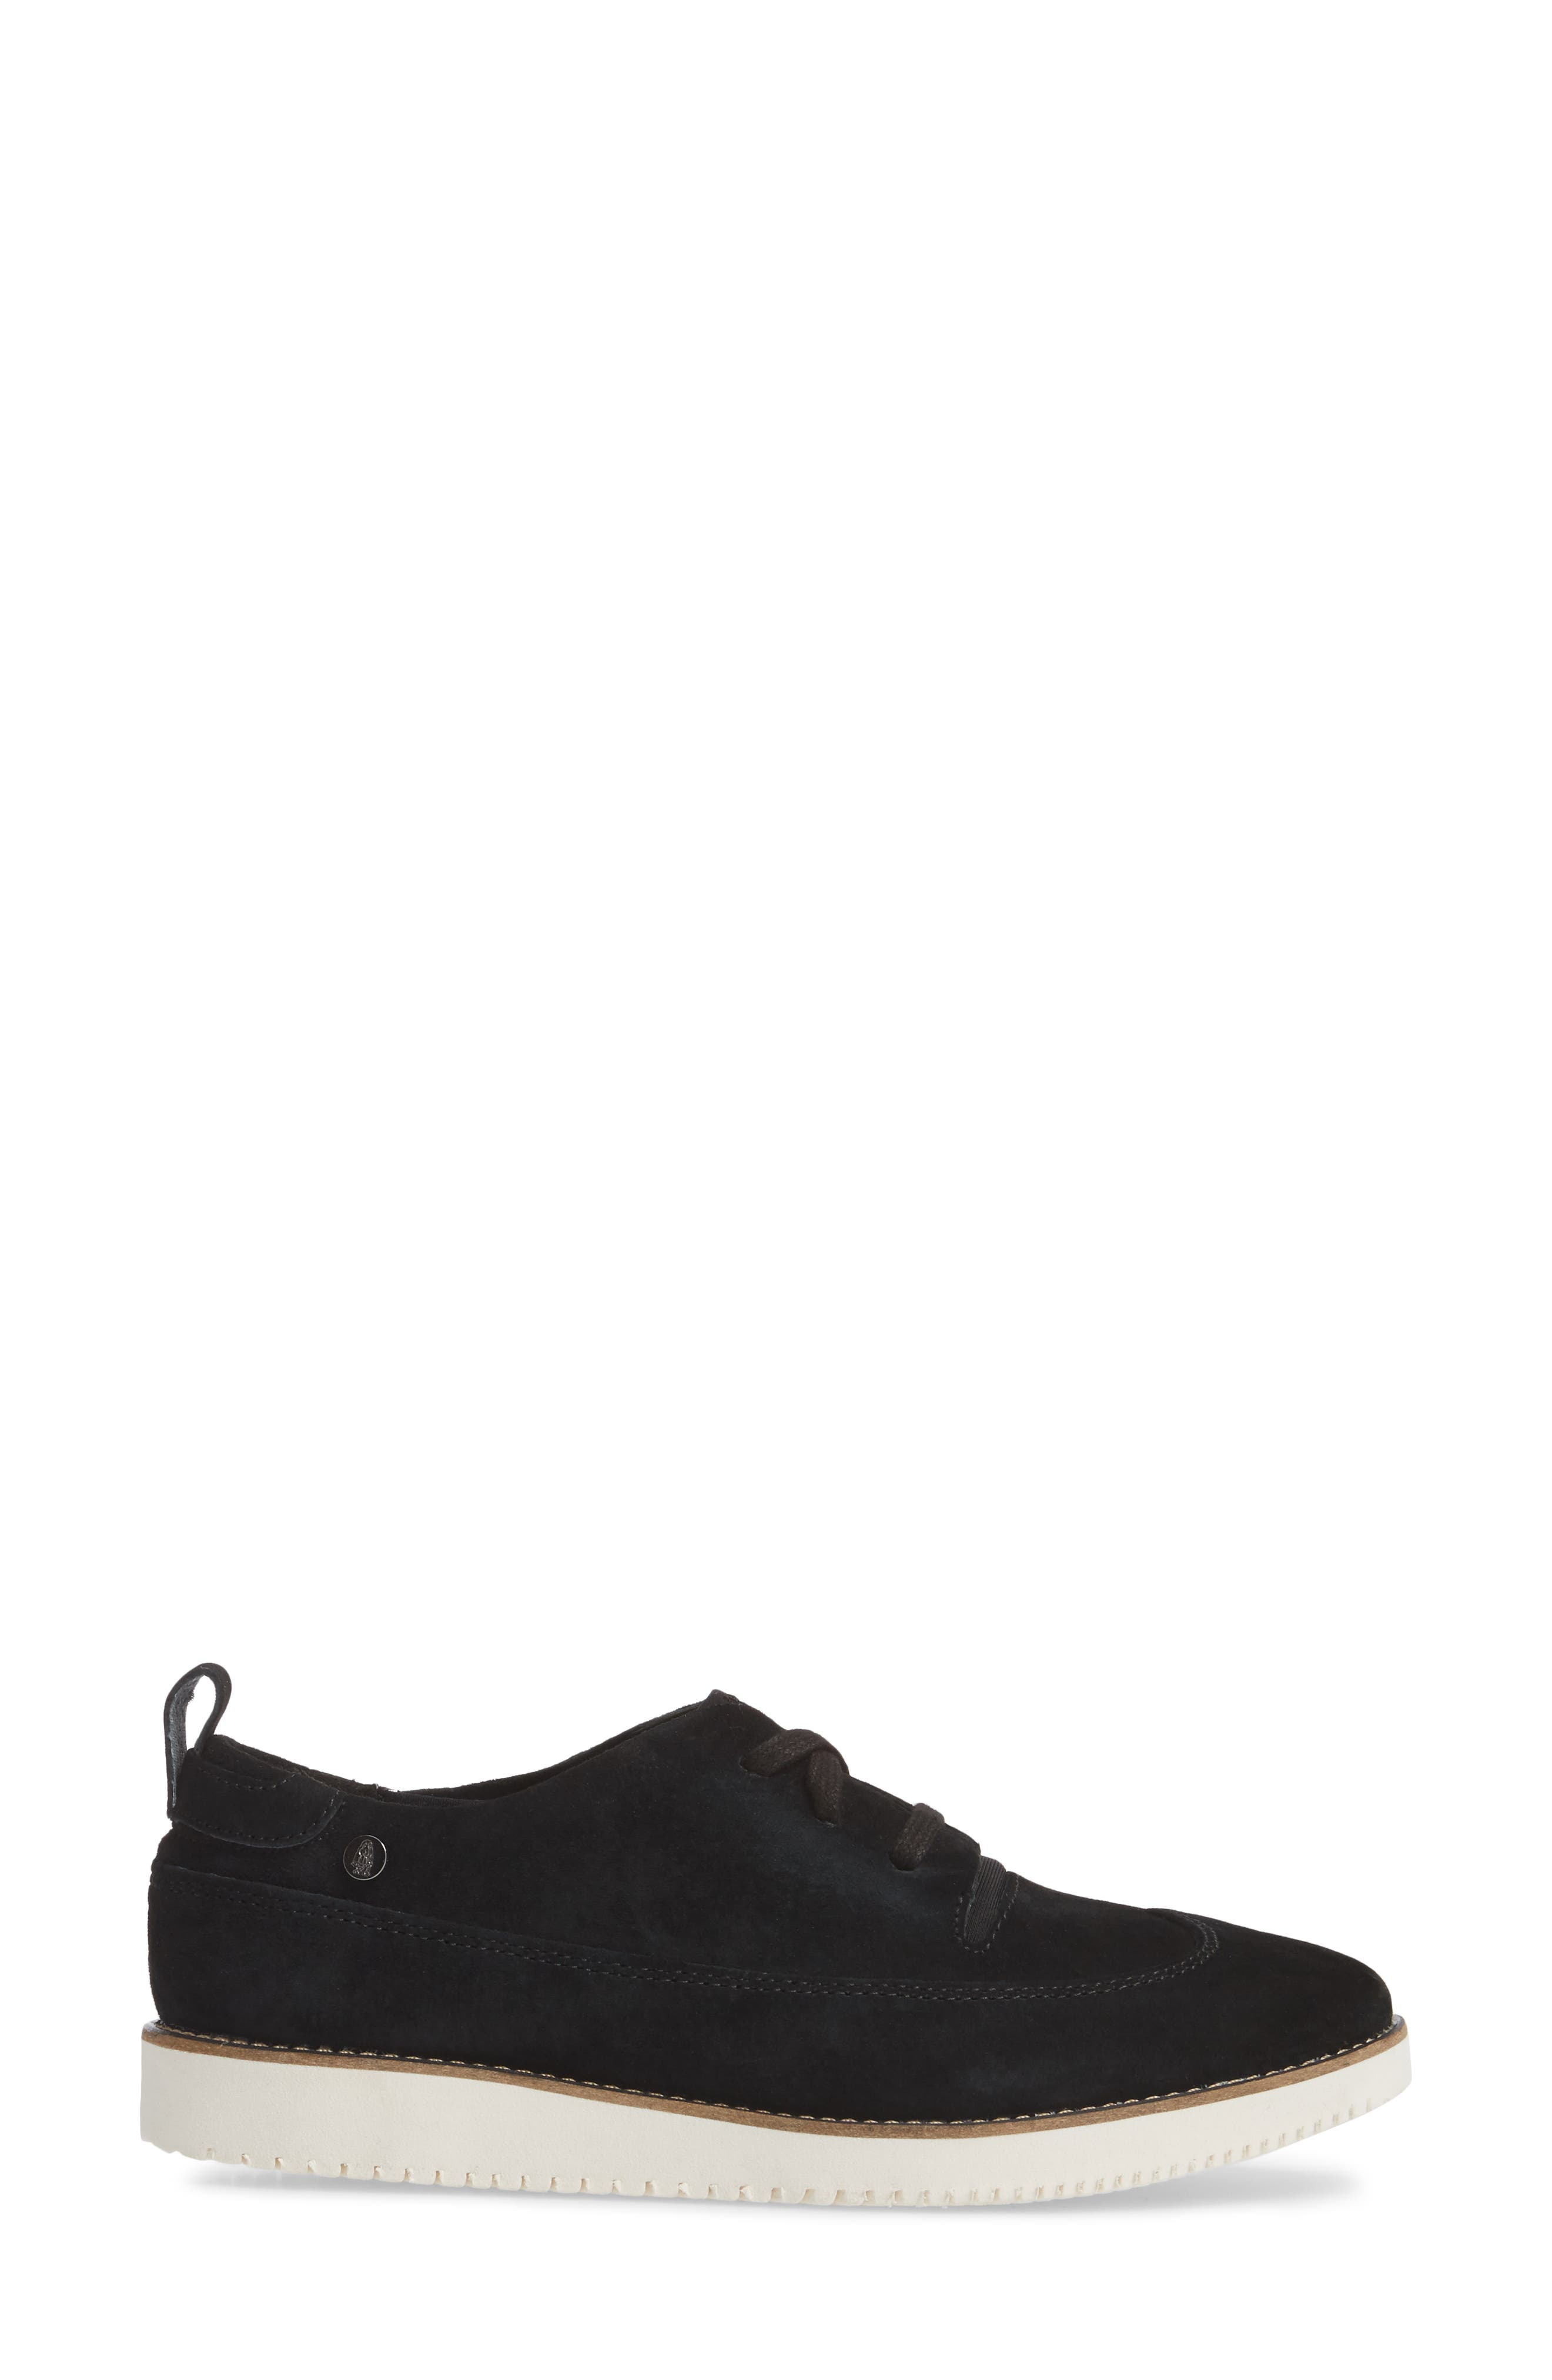 HUSH PUPPIES<SUP>®</SUP>, Chowchow Oxford, Alternate thumbnail 3, color, BLACK SUEDE